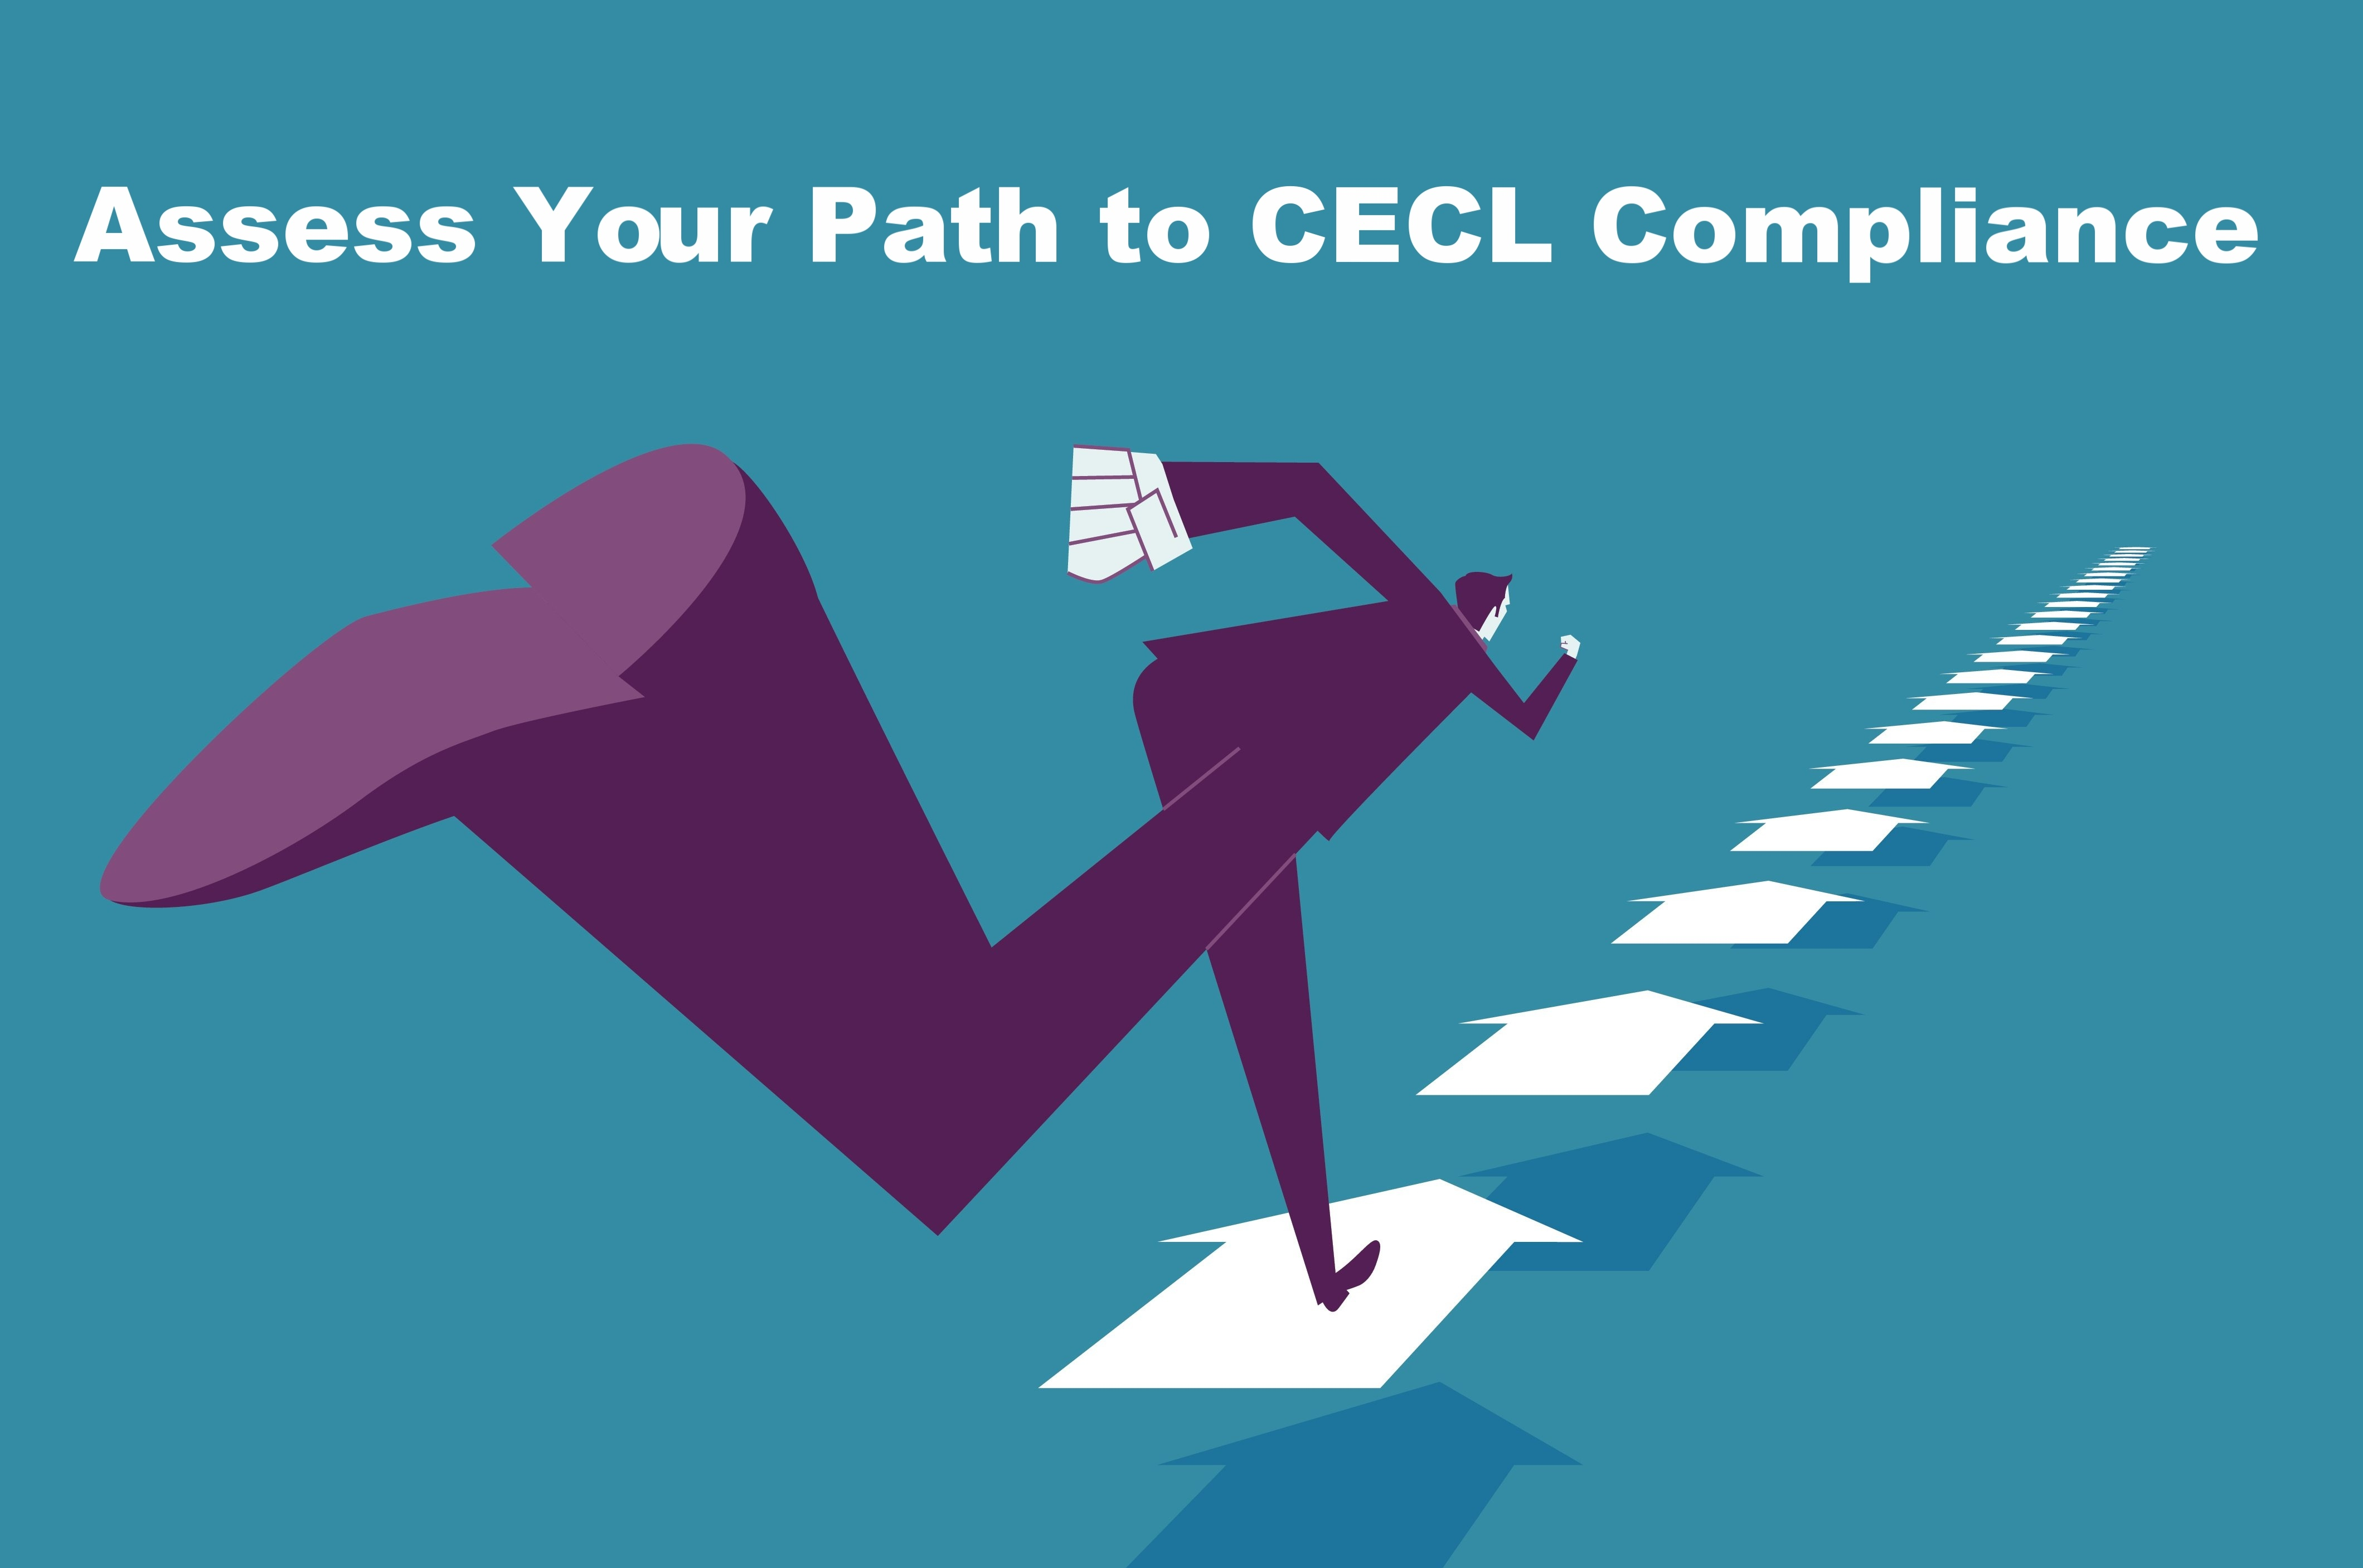 Assess Your Path to CECL Compliance